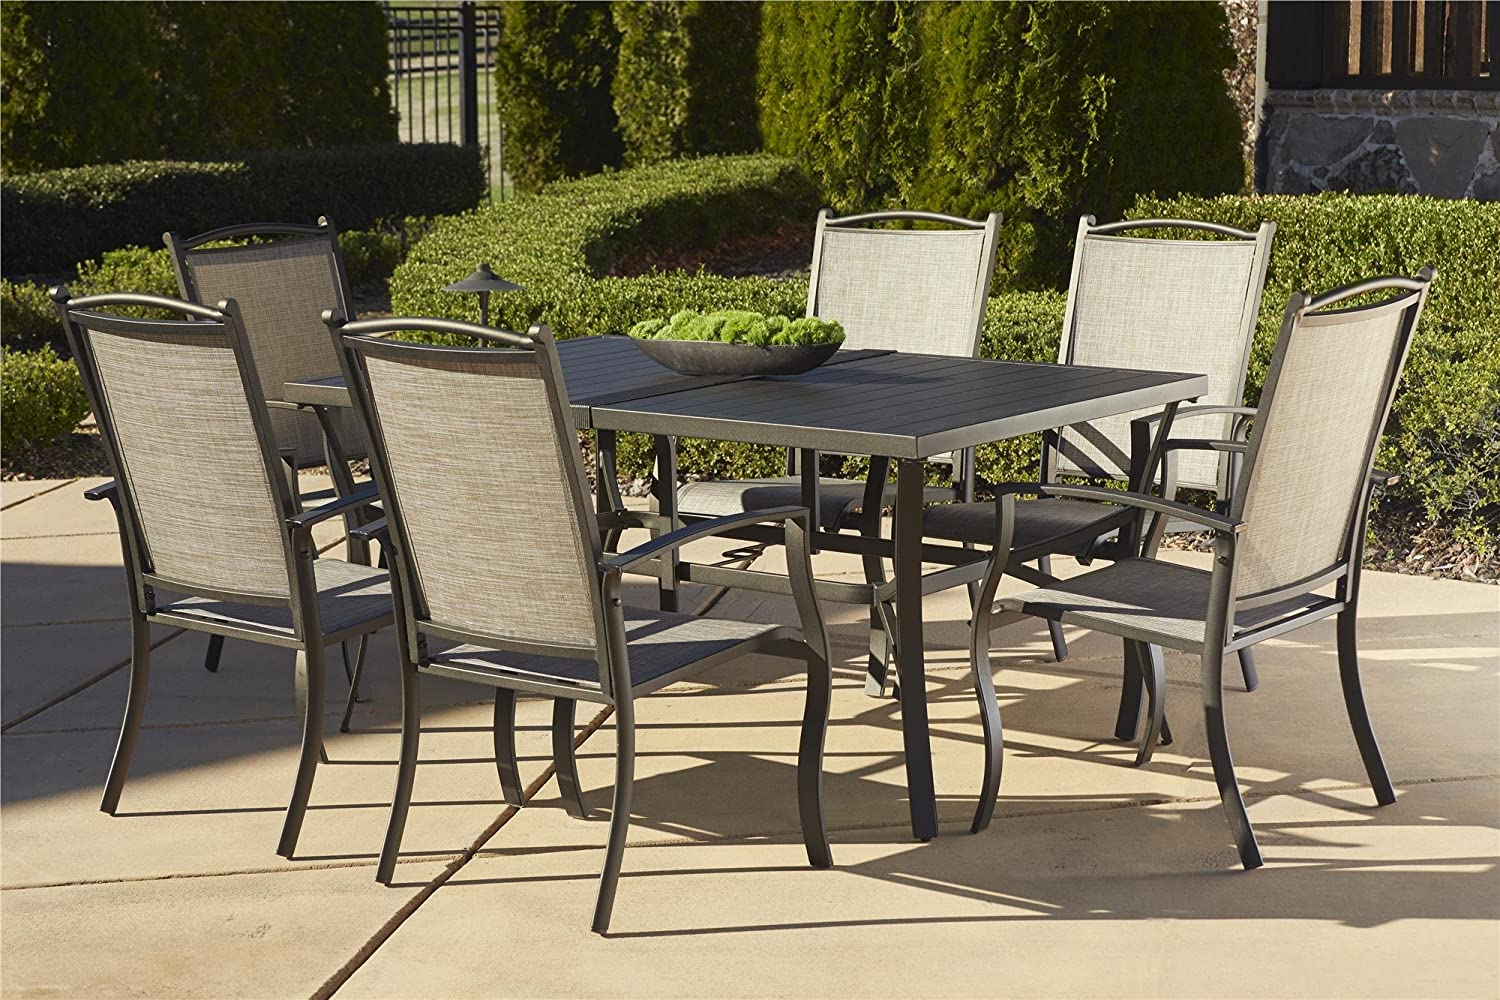 patio set dining aluminum weather alpha jensen leisure sacramento outdoor all govenor wicker furniture